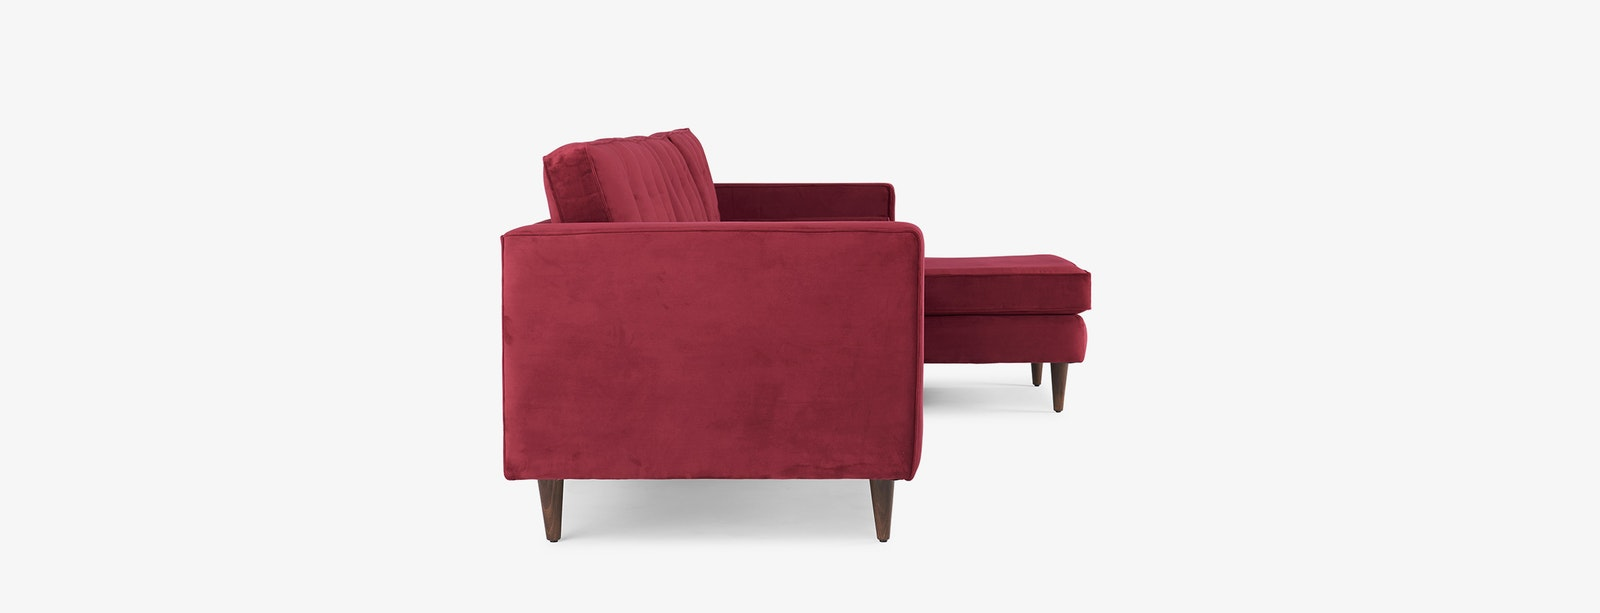 Braxton-sectional-bella-merlot-walnut-170710-lastudio-2538-webres